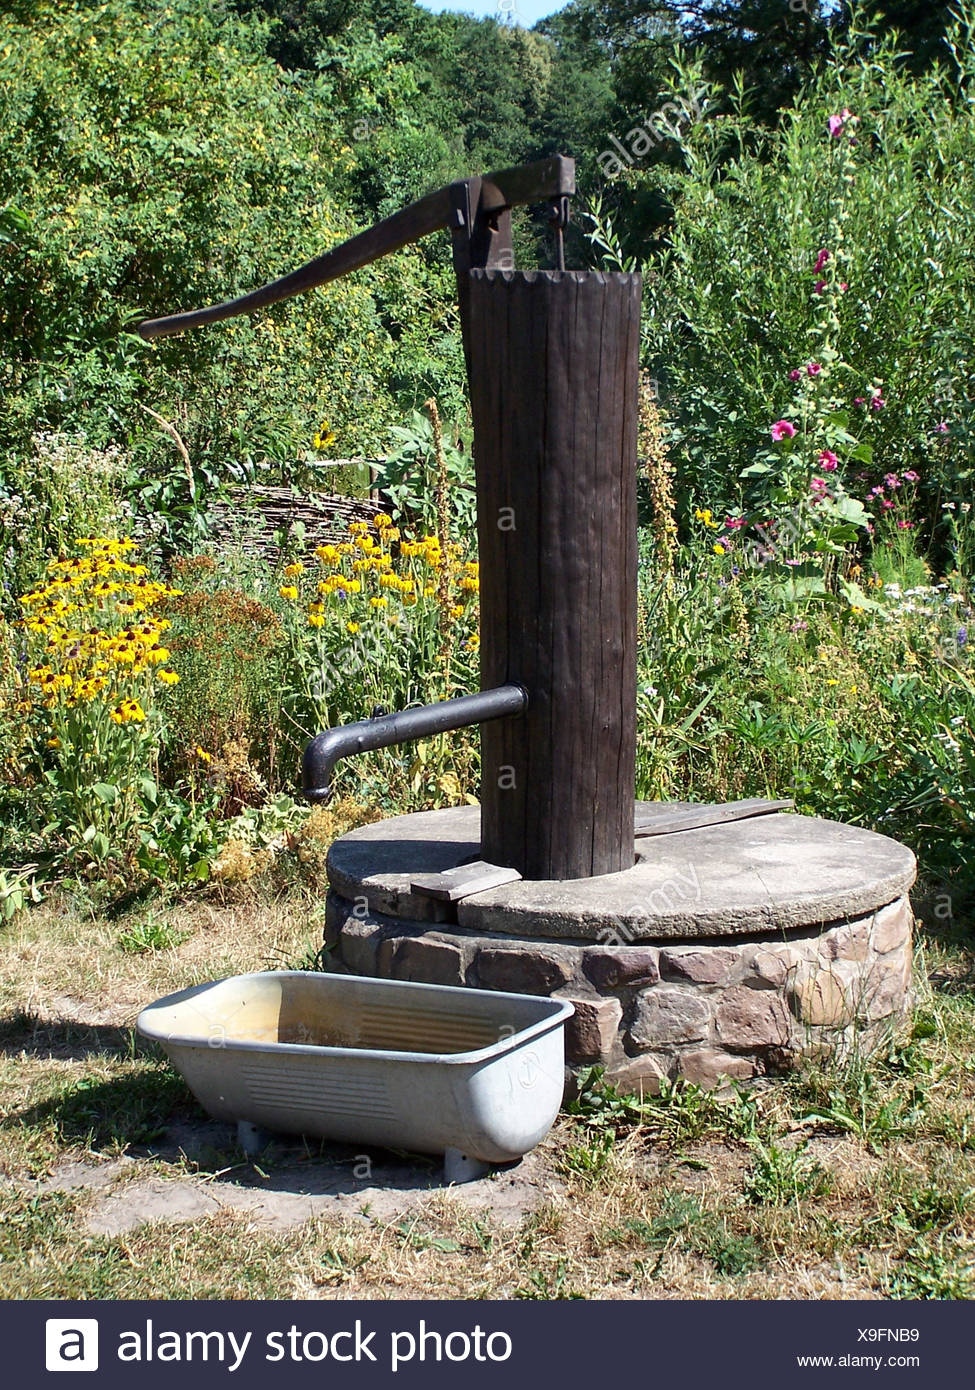 Old drinking water fountain pump immagini old drinking water fountain pump fotos stock alamy - Vasca da bagno antica ...